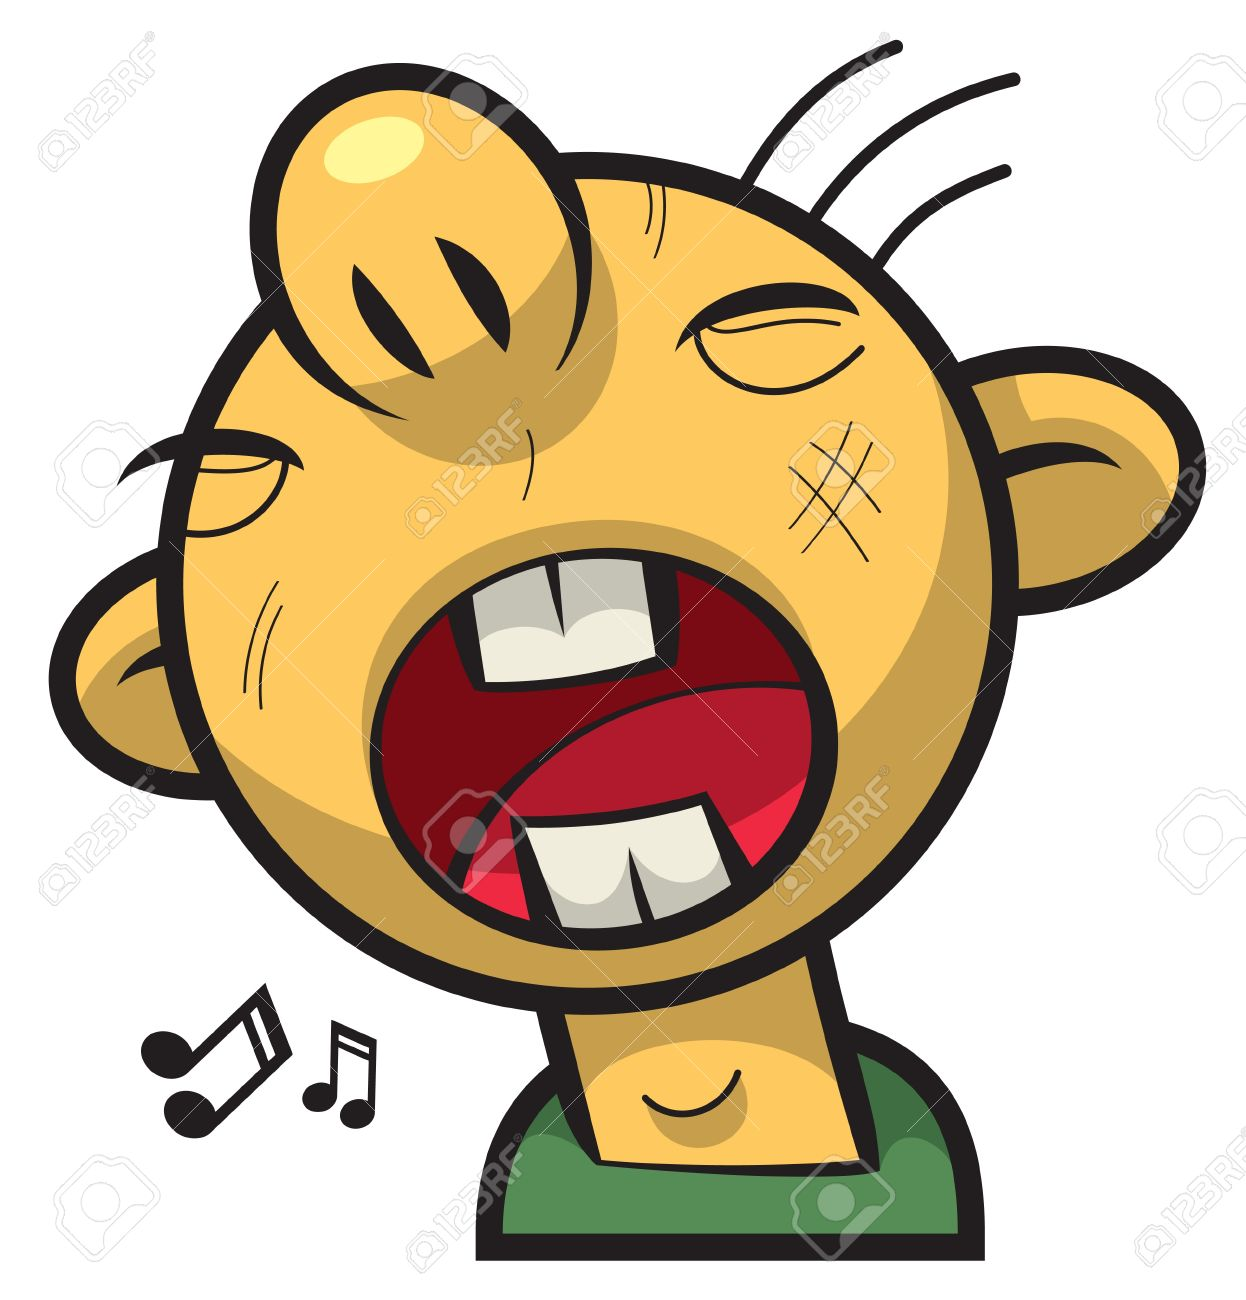 Singing Boy With Round Face And Big Mouth Royalty Free Cliparts.